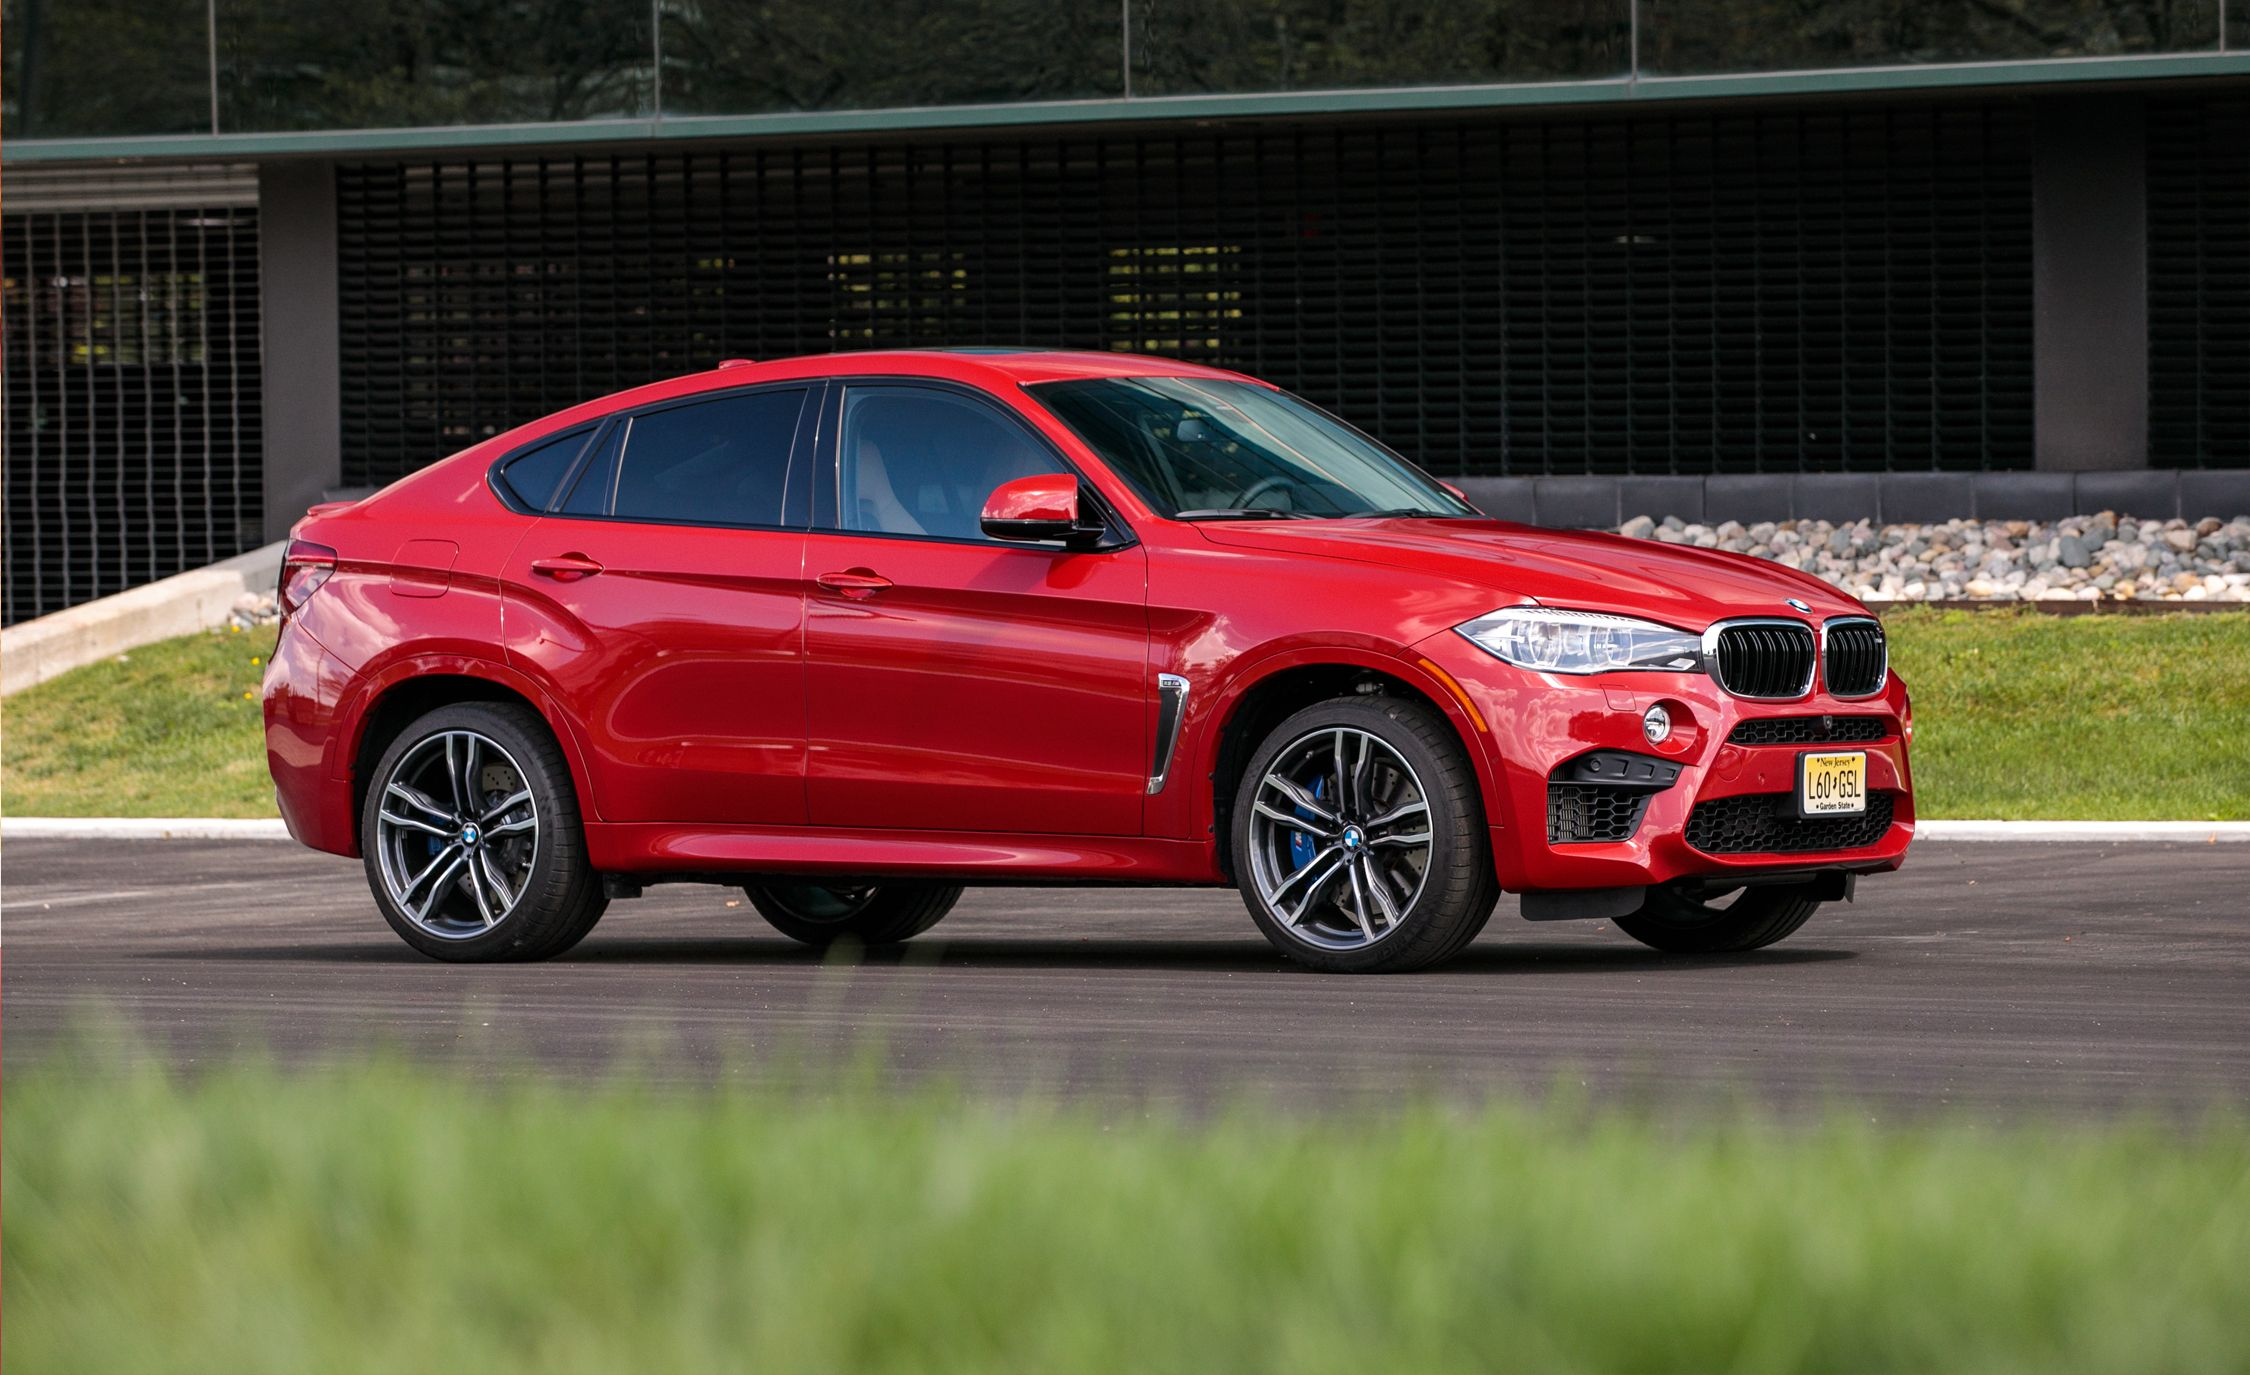 2020 Bmw X5 M Review Pricing And Specs Bmw X6 Bmw X6 Black Bmw